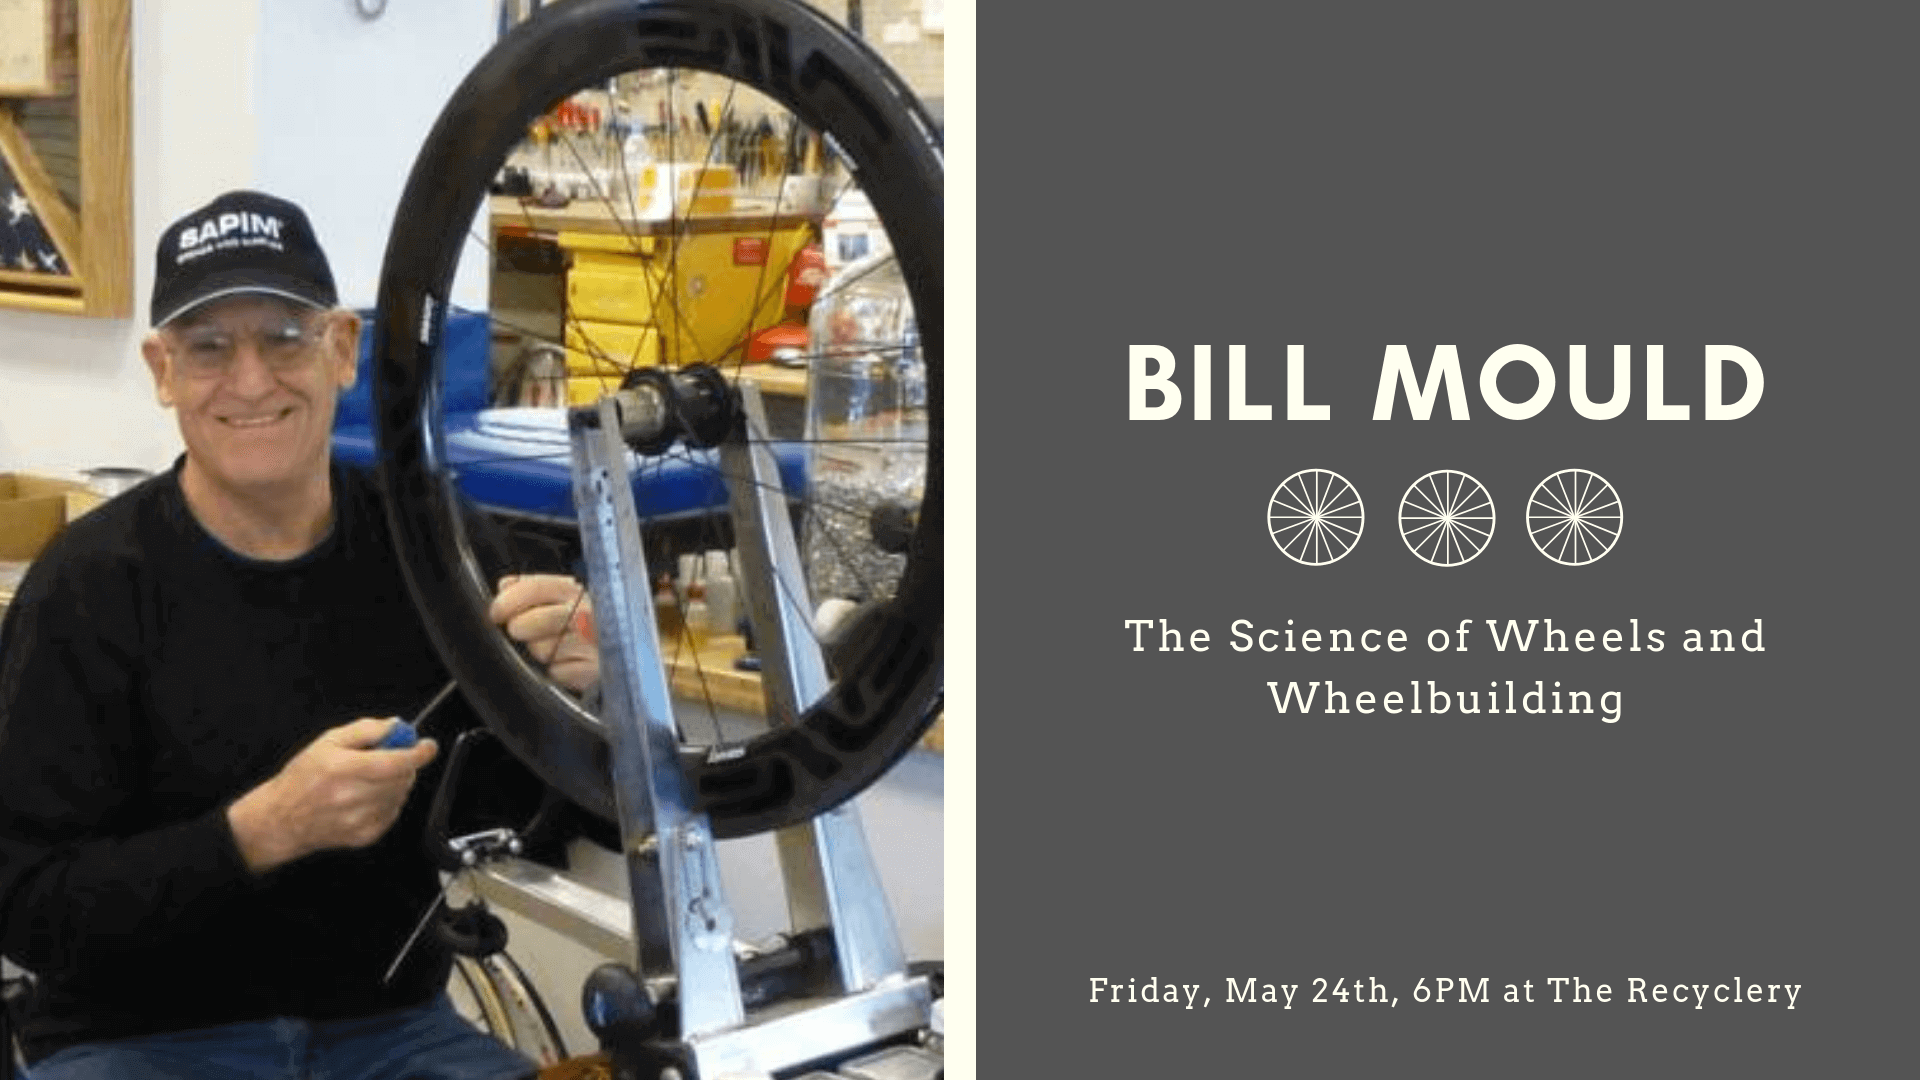 Bill Mould: The Science of Wheels and Wheelbuilding